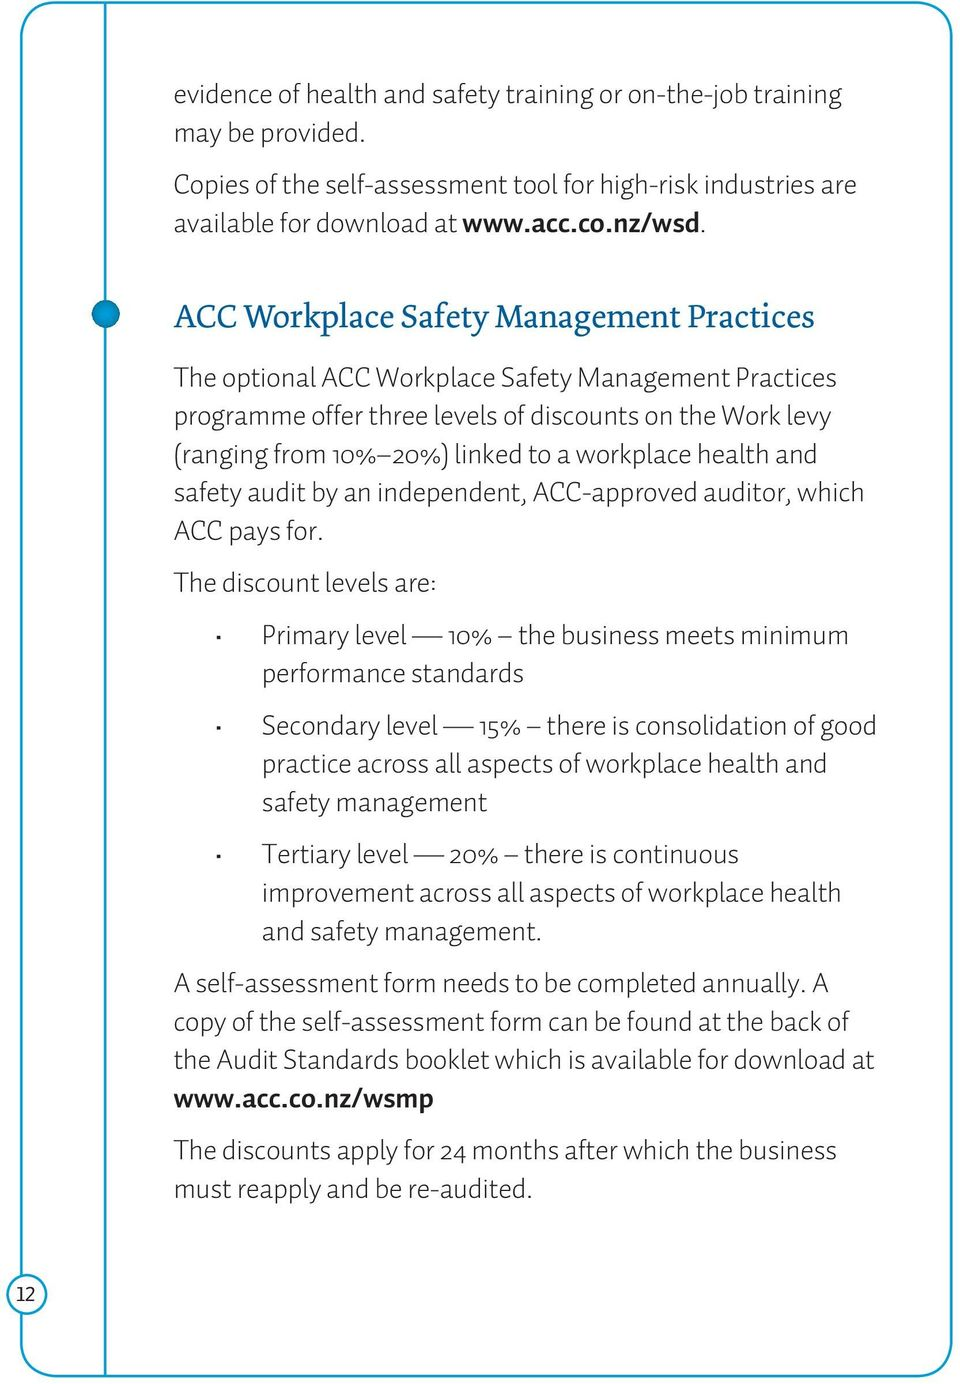 workplace health and safety audit by an independent, ACC-approved auditor, which ACC pays for.